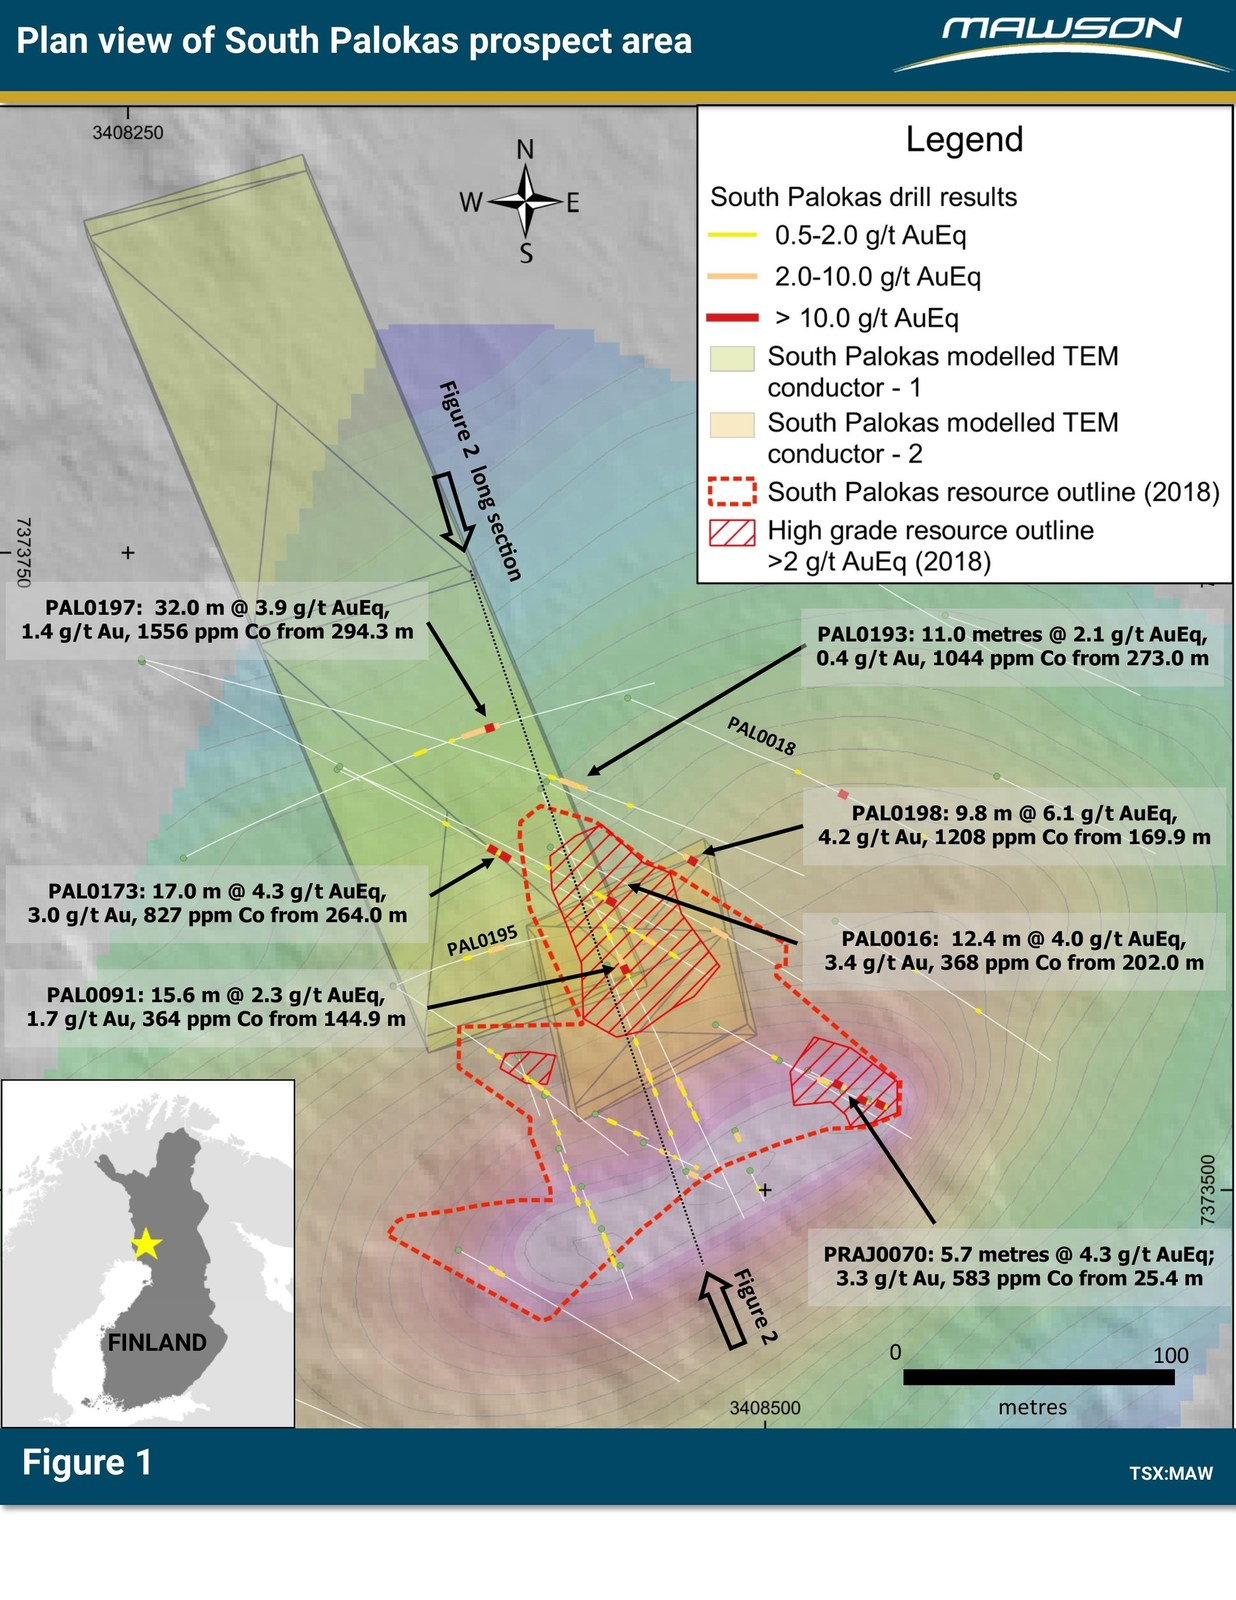 Figure 1: Plan of South Palokas prospect area indicating drill results, the outline of 43-101 resource, modelled ground TEM plates over Lidar background with superimposed mise-á-la-masse contours. For more detailed location information, refer to press release of April 23, 2019. Note that Figure 3 is essentially a view down onto the plane of the northwest dipping TEM conductors.